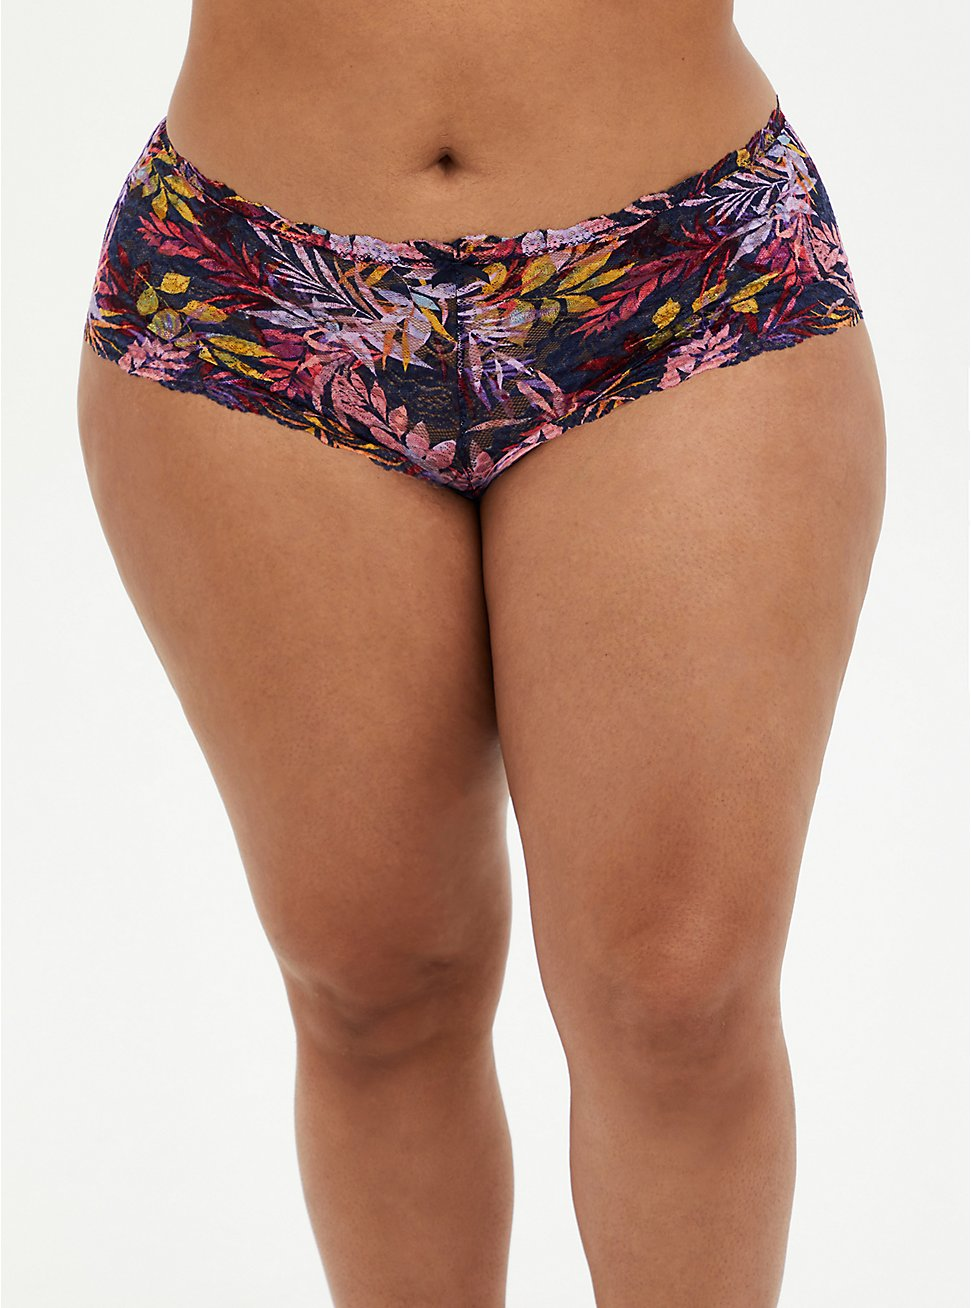 Floral Lace Cheeky Panty, MULTIPLIED FRONDS NAVY, hi-res